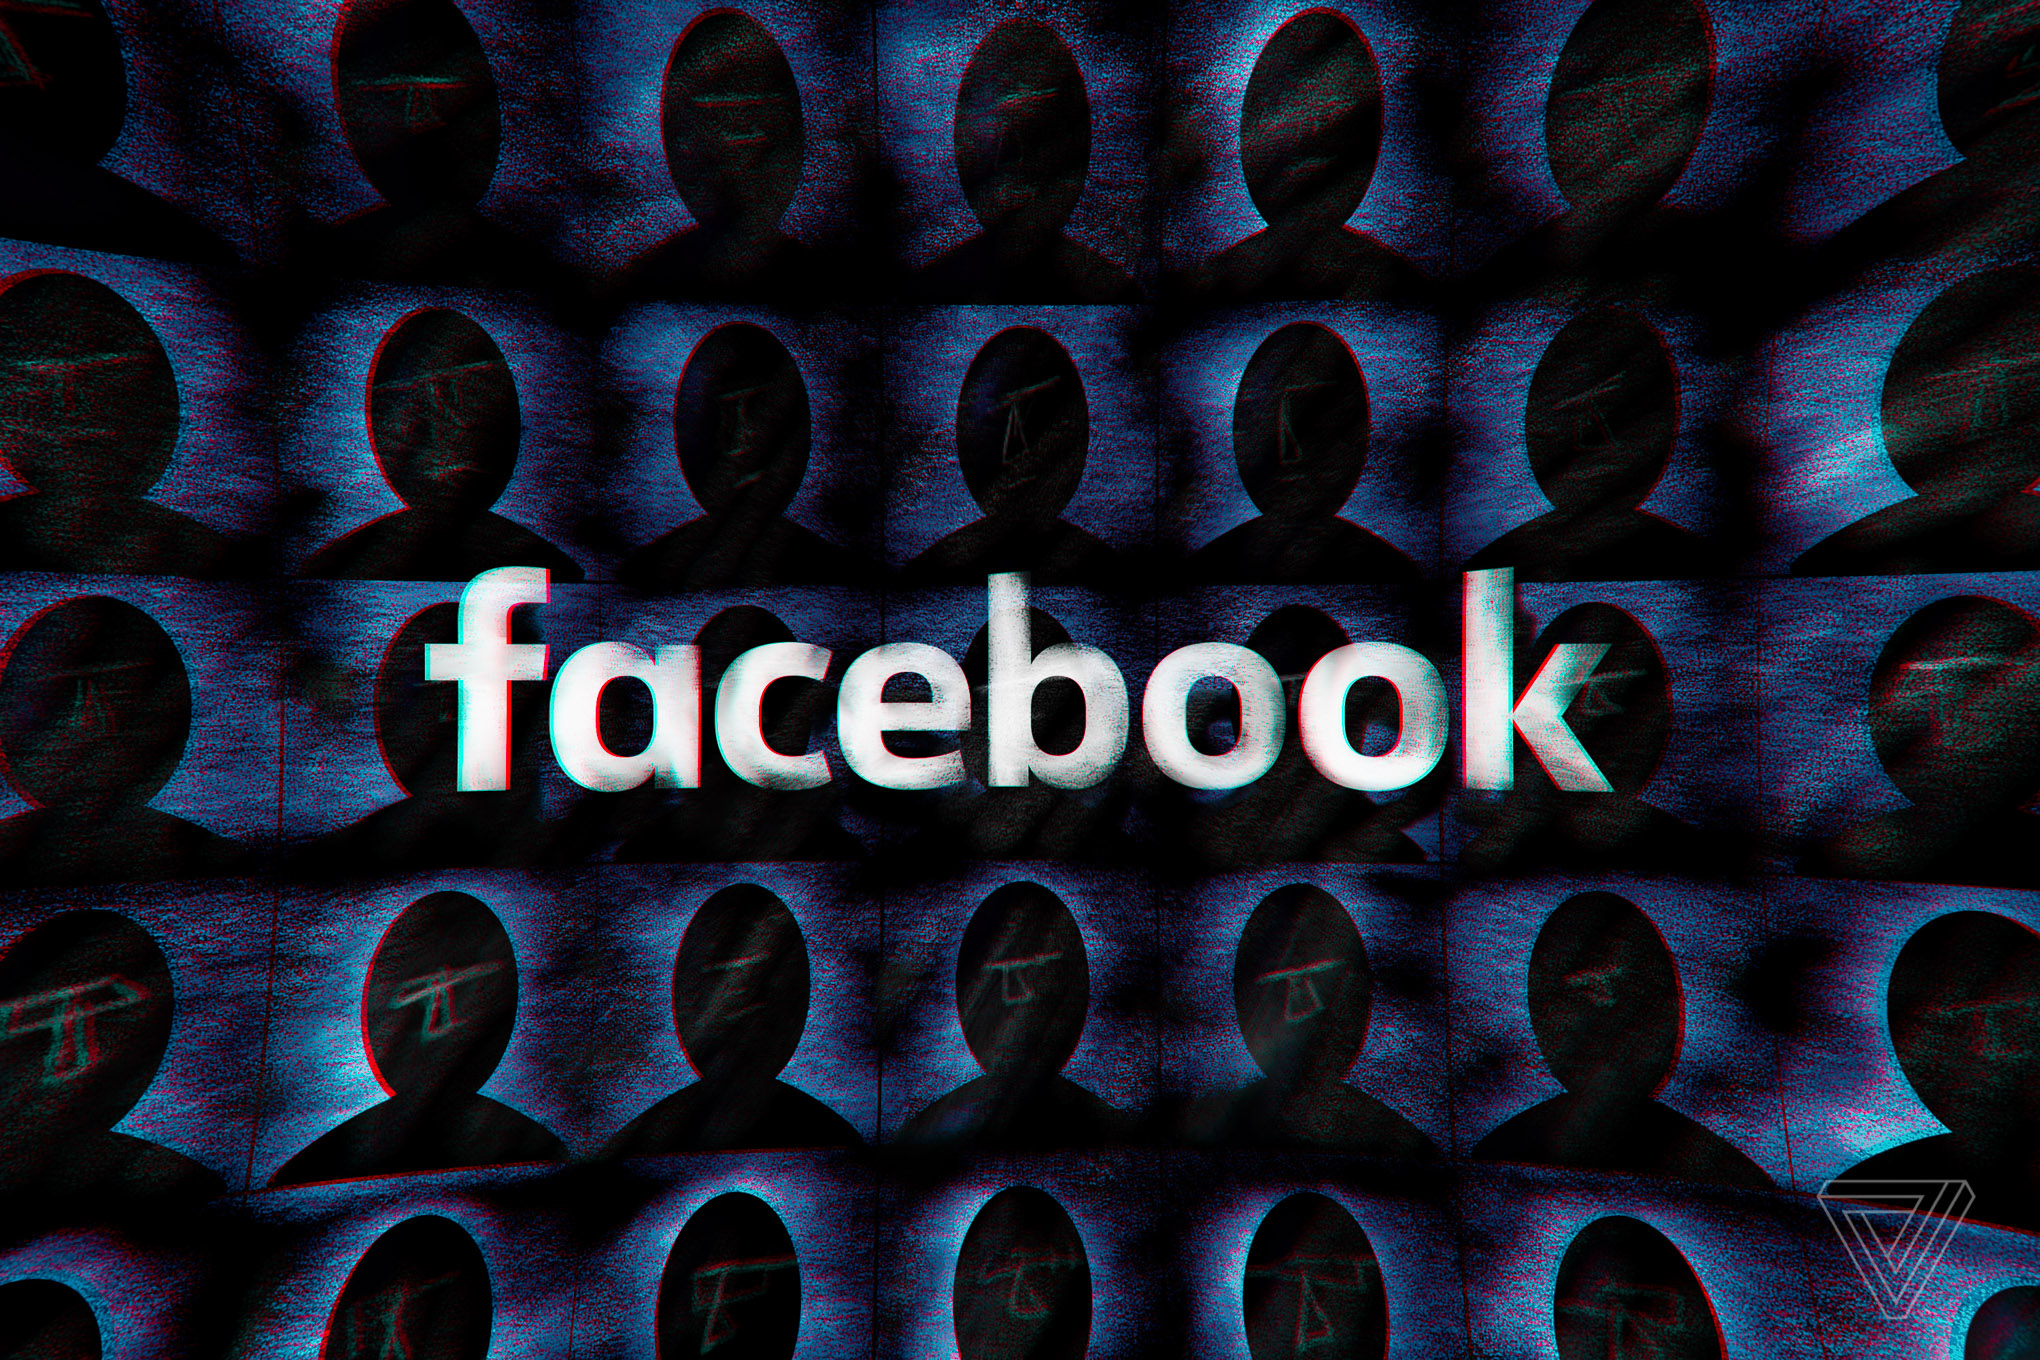 Shadow profiles are the biggest flaw in Facebook's privacy defense